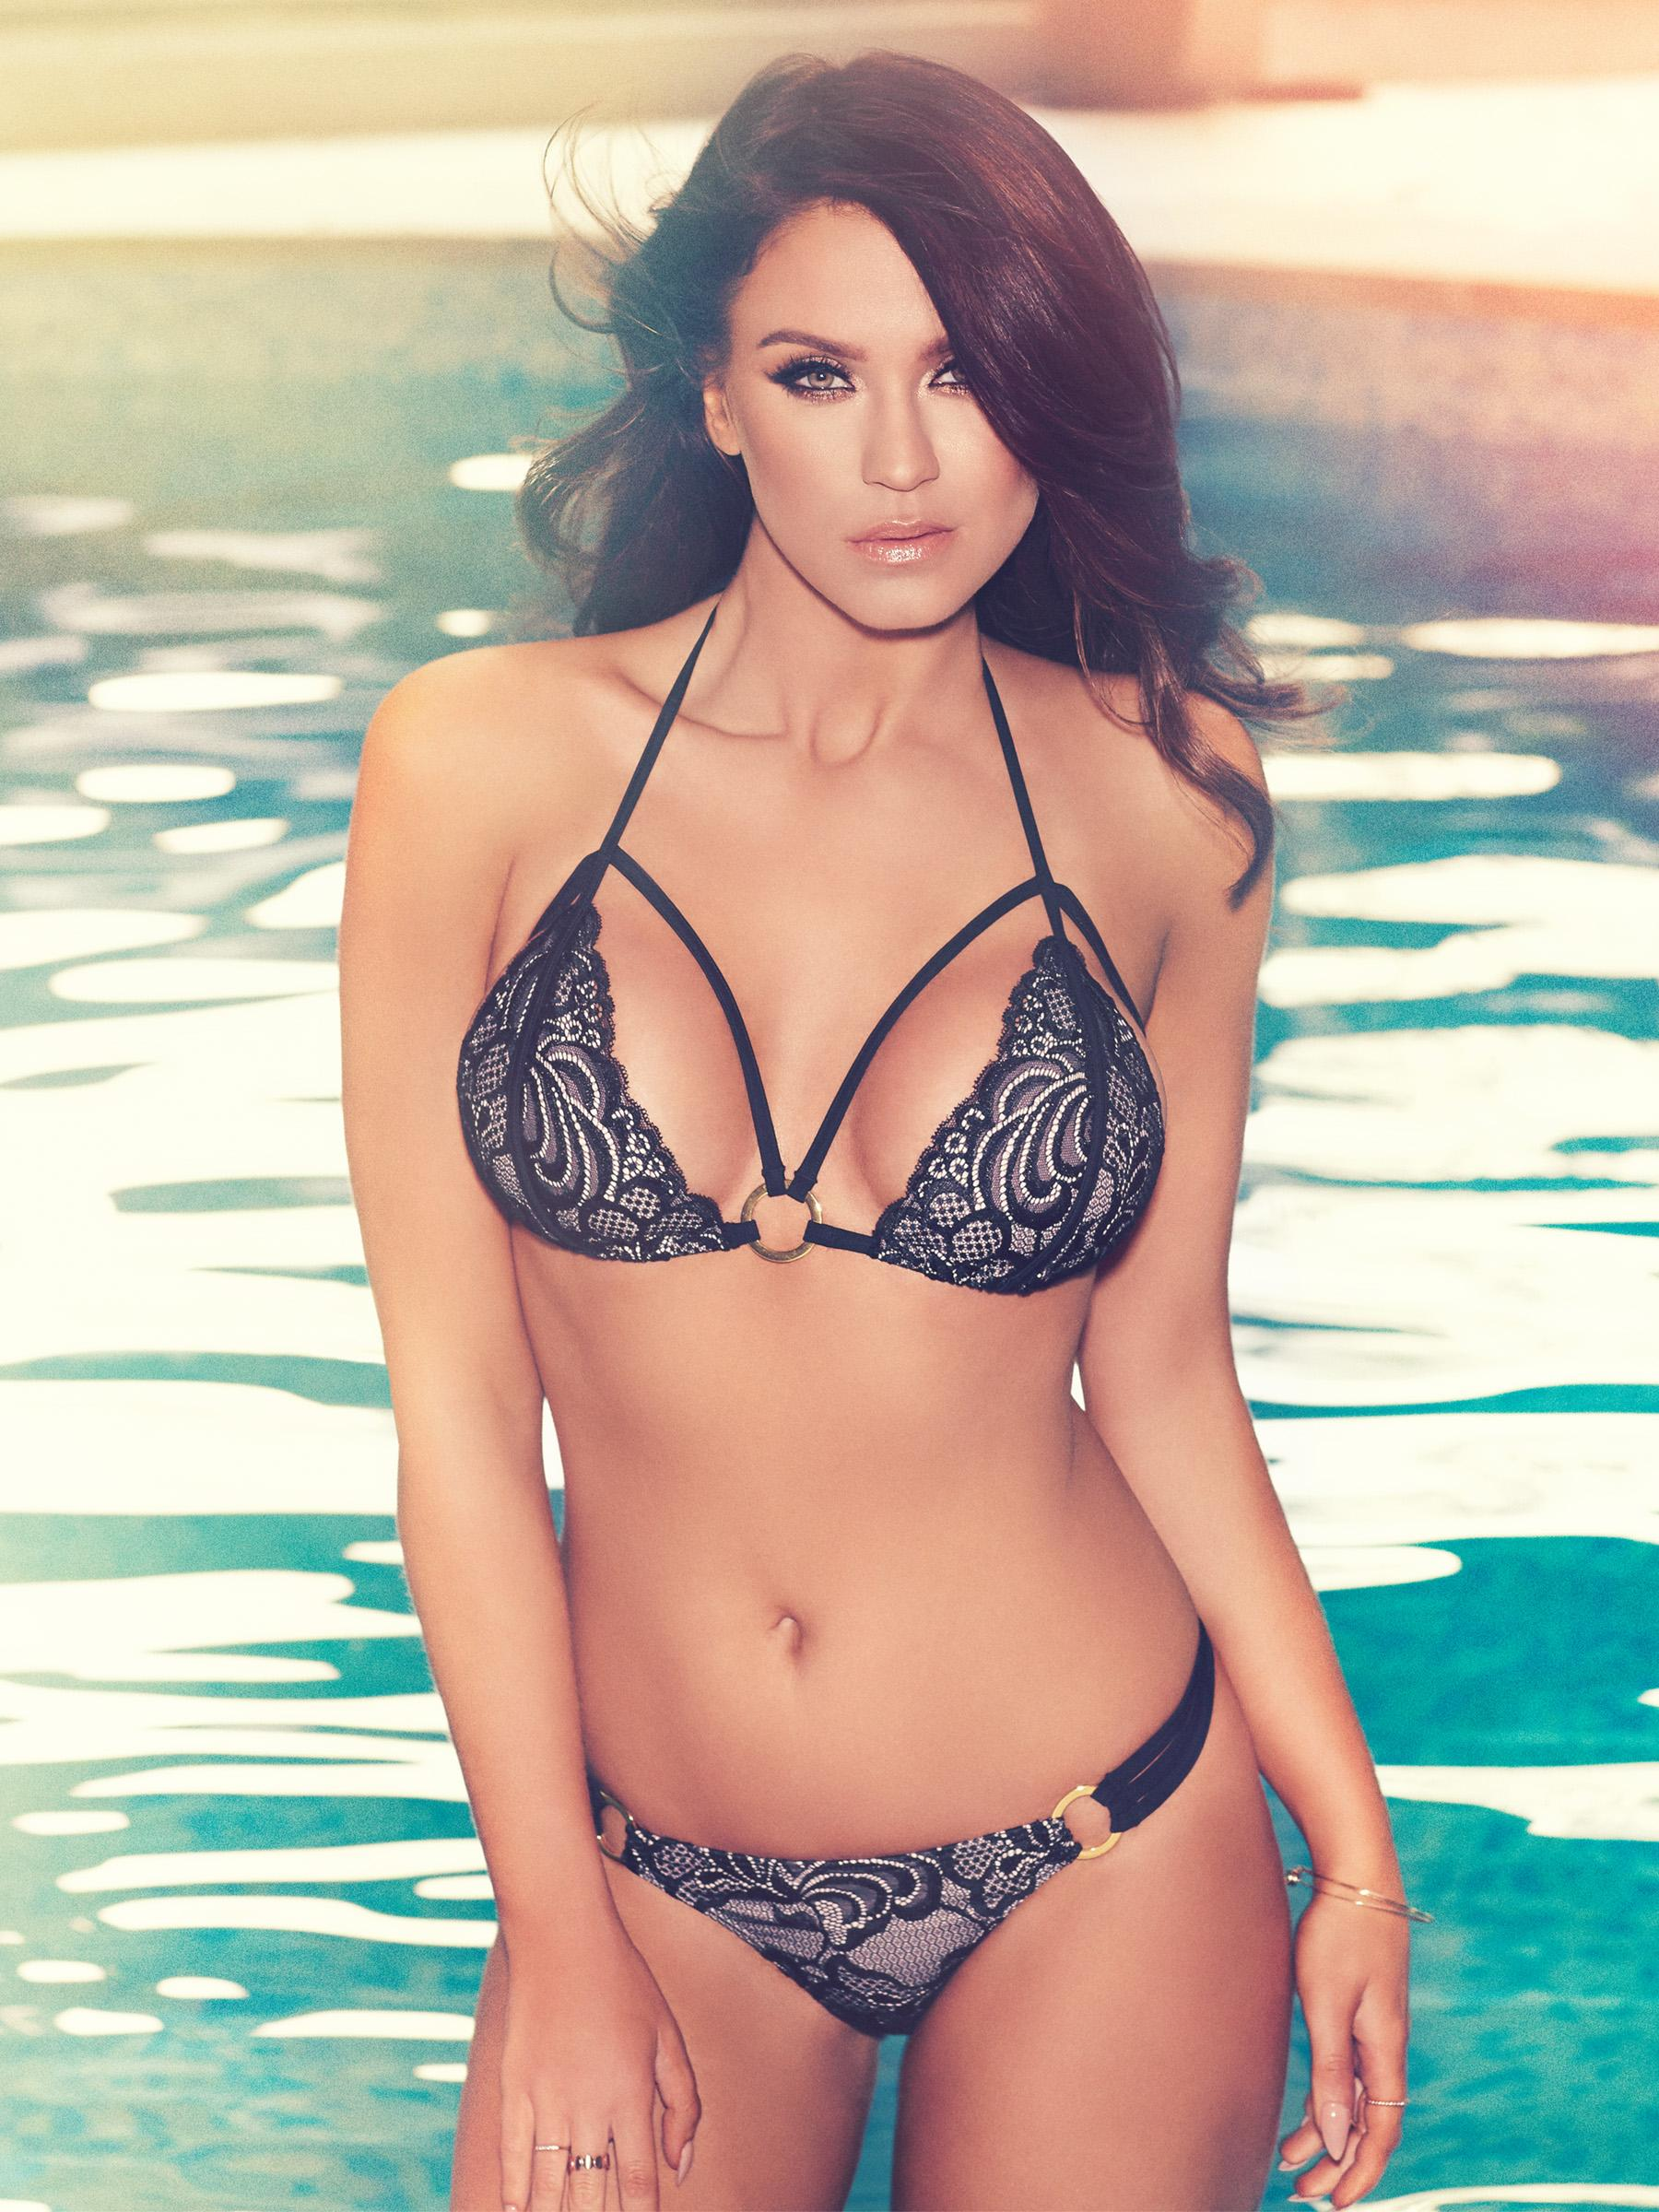 Maya Stud Bikini Top - Black/nude Ann Summers Free Shipping Real Cheap Wide Range Of With Paypal Cheap Price Explore Buy Cheap Best Prices JqIzwijc